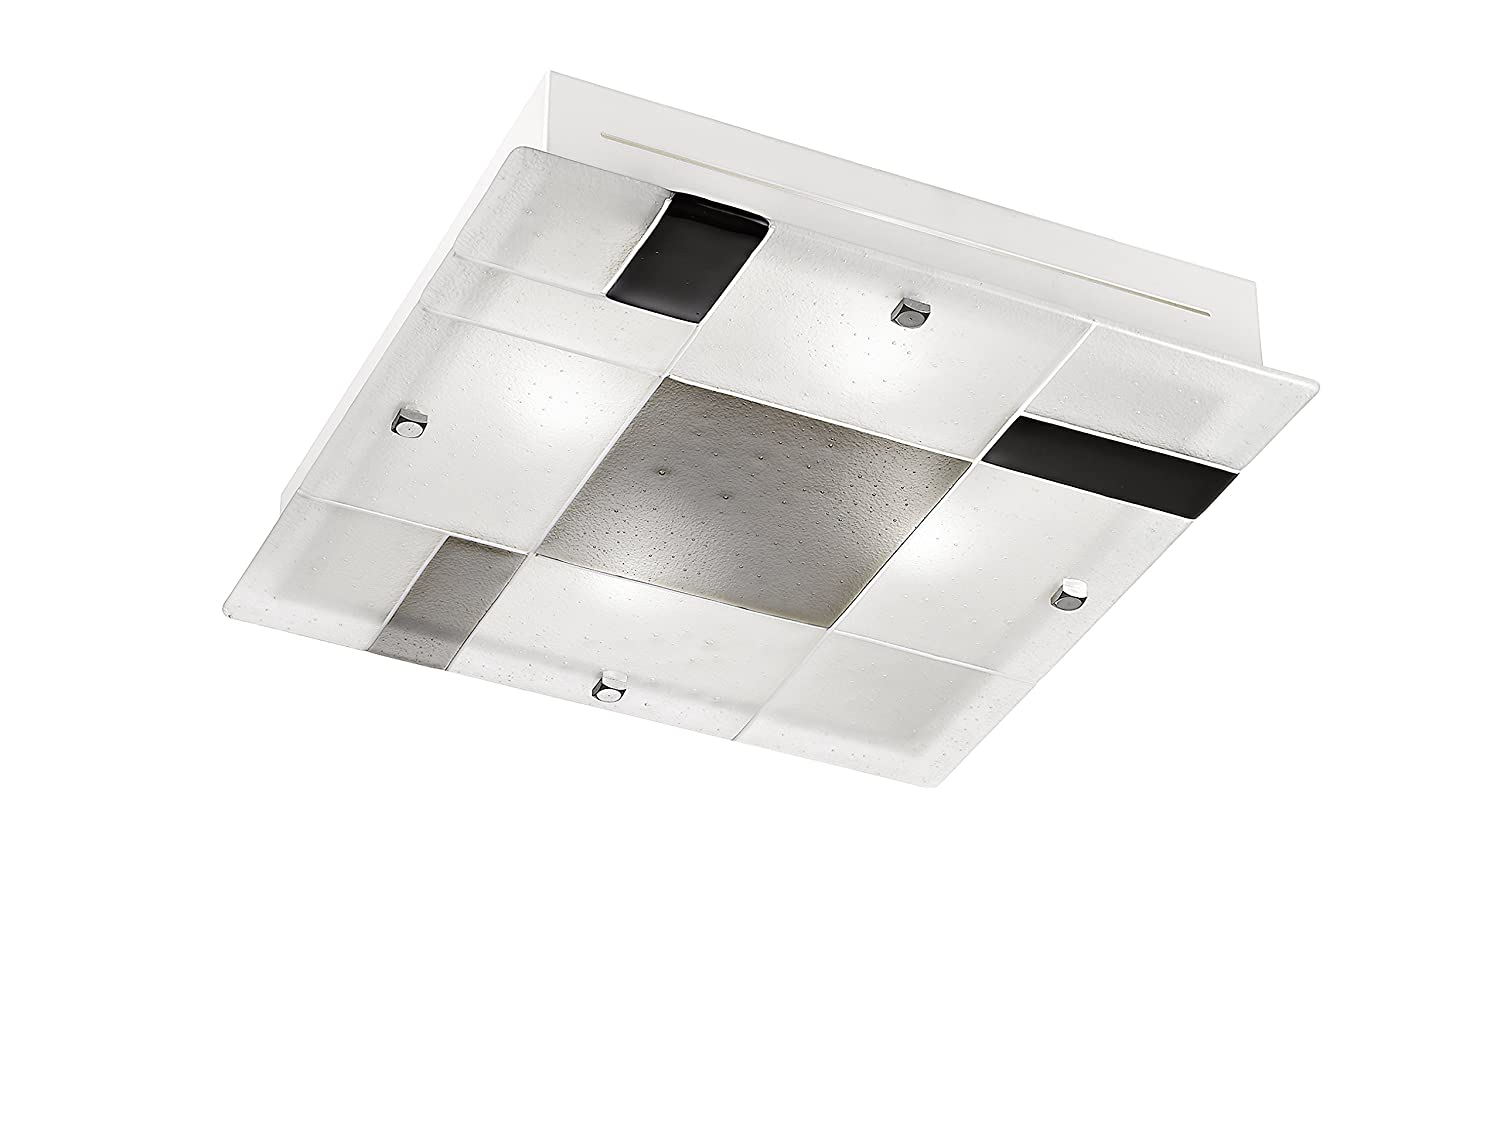 Rossini Plafoniere Led : Rossini illuminazione q n led plafoniera vetro amazon